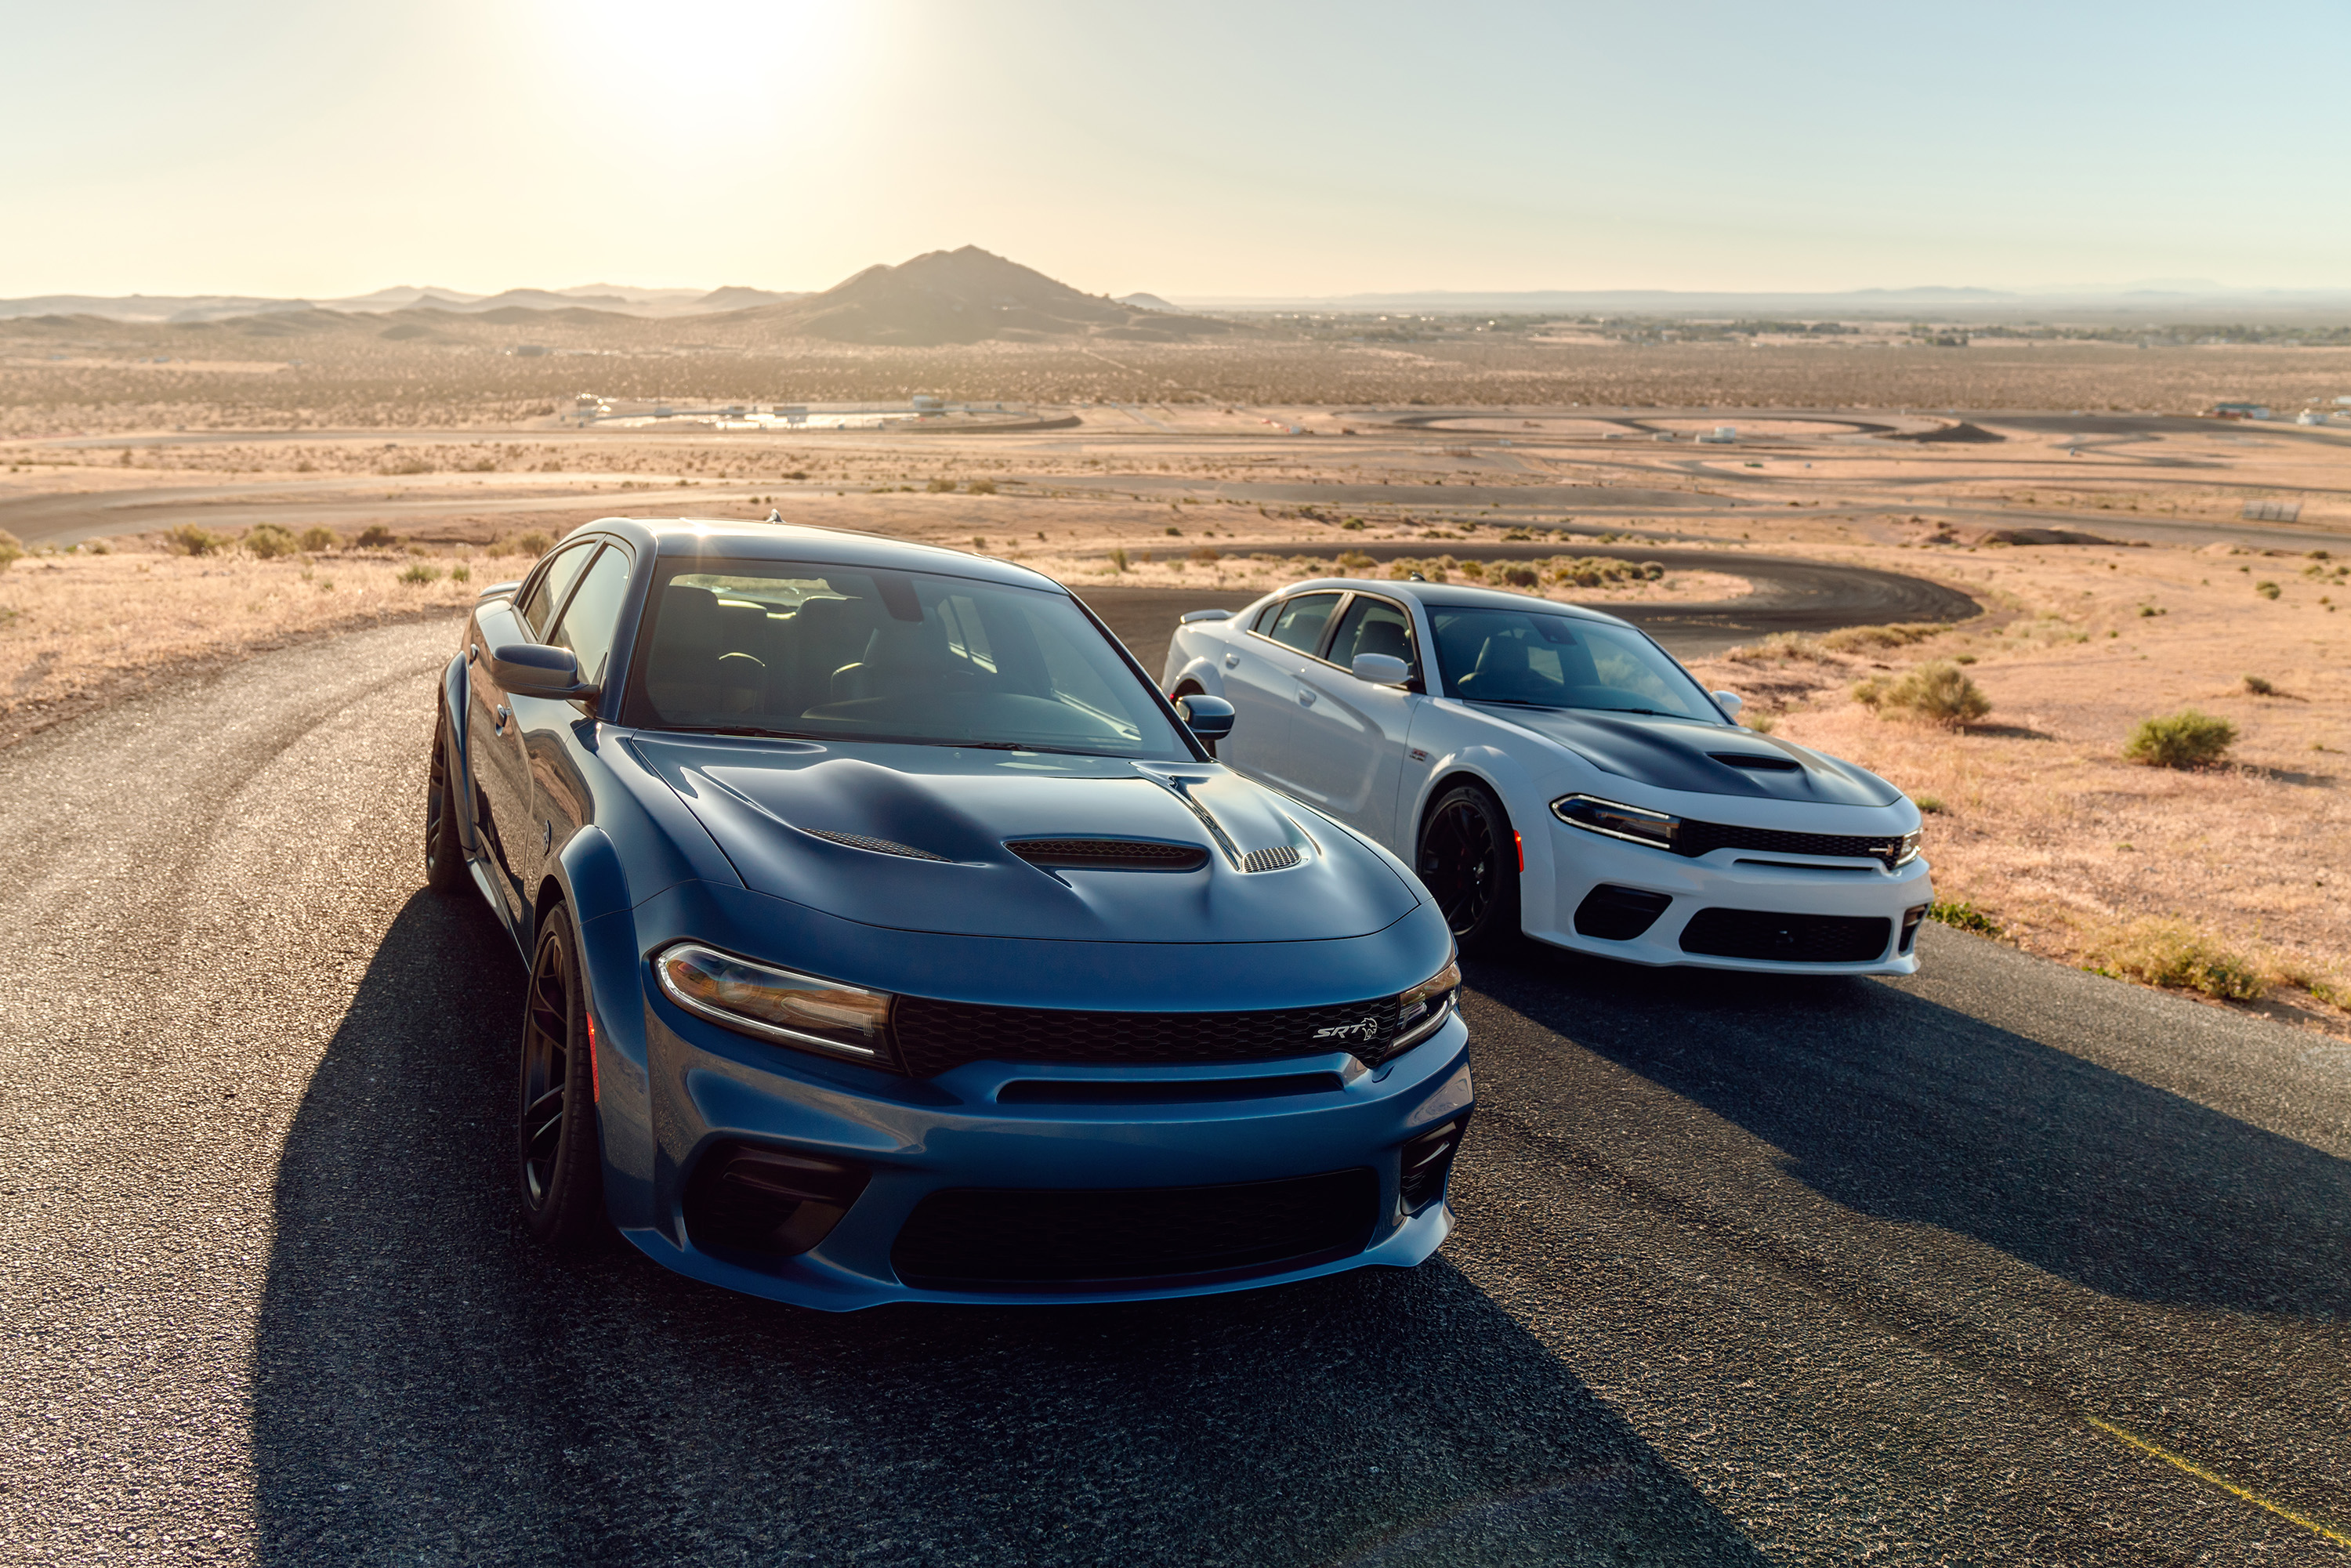 Widebody 2020 Dodge Charger Srt Hellcat Is Most Powerful And